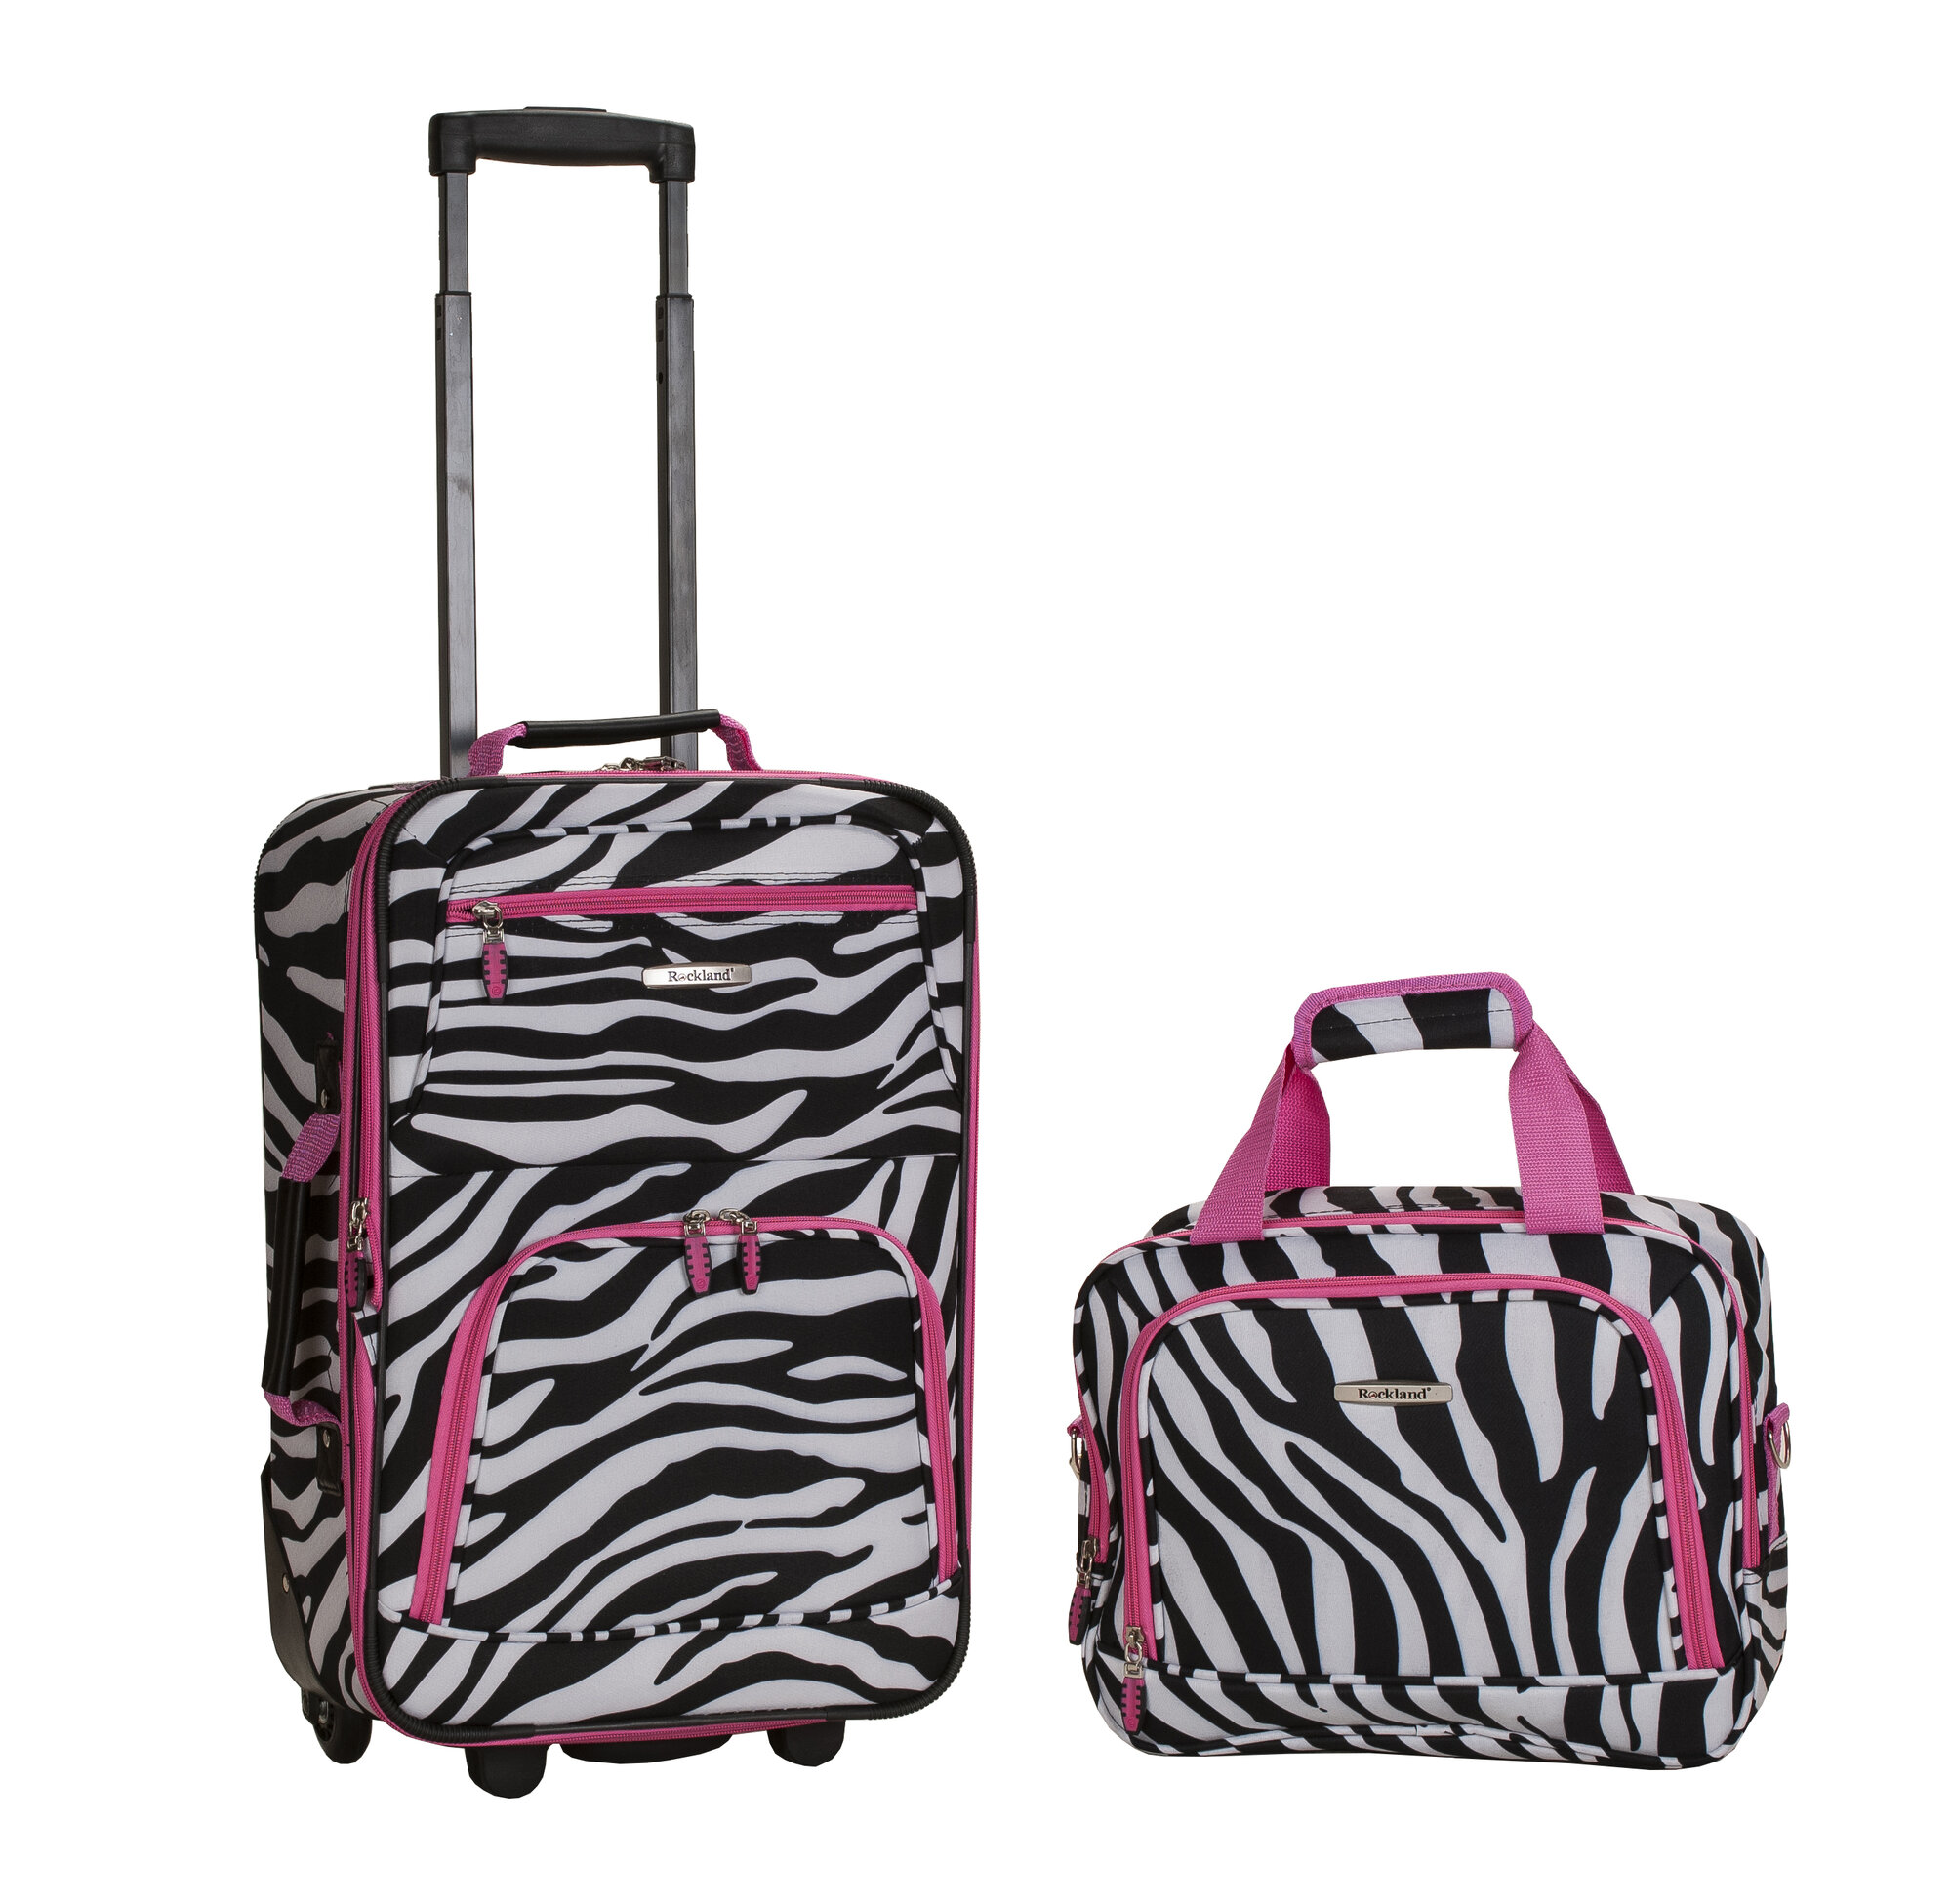 Rockland 2 Piece Carry on Luggage Set Pinkzebra | eBay